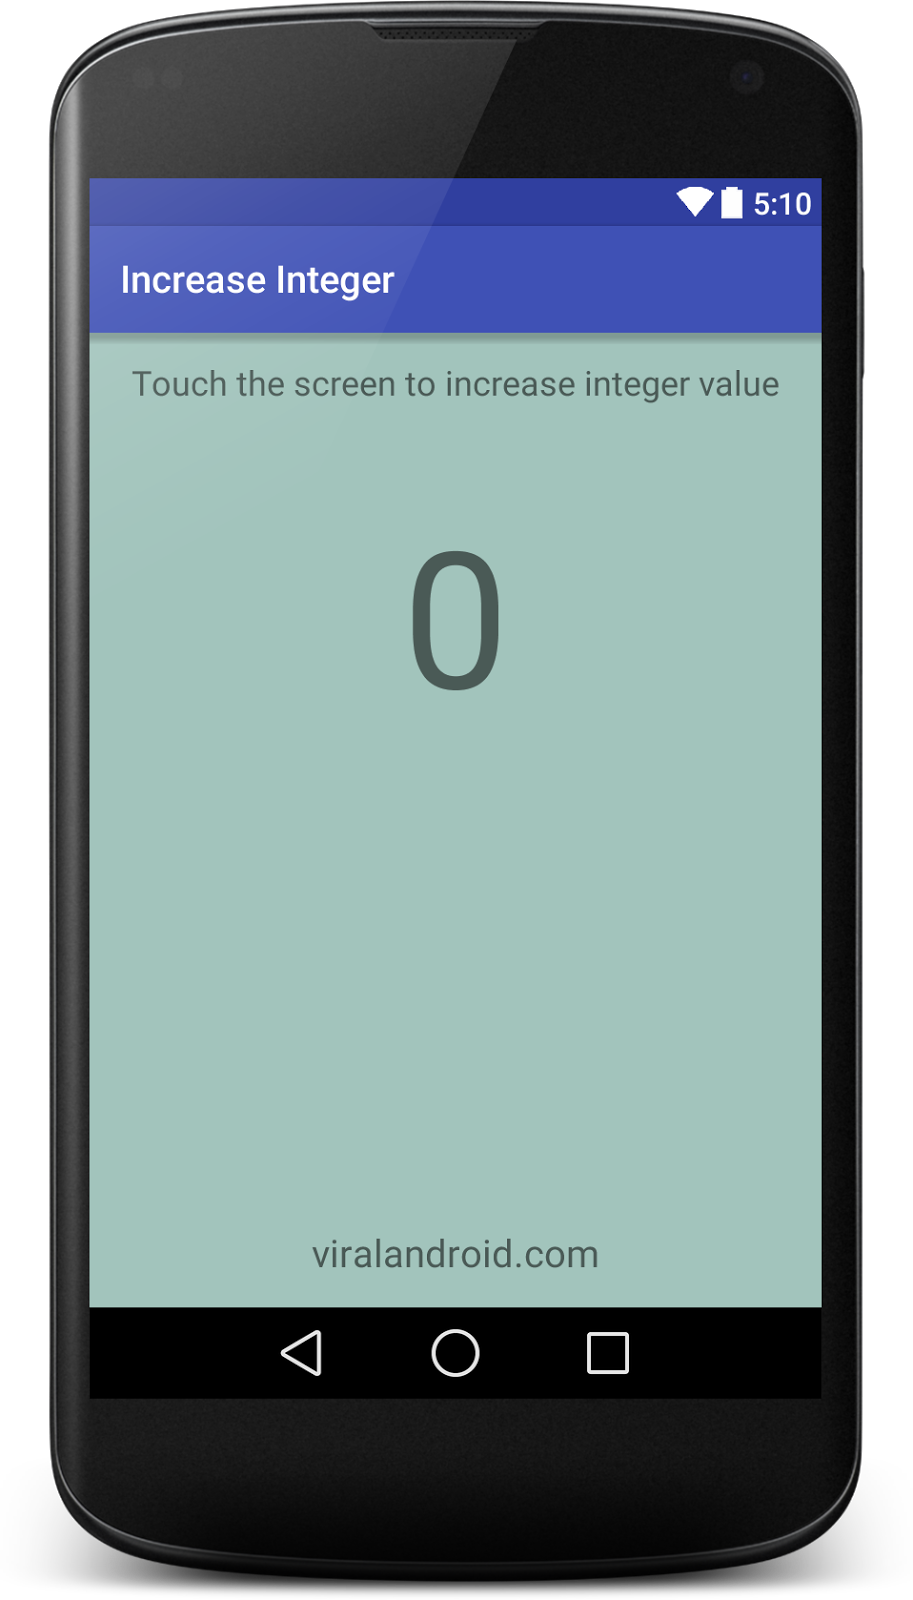 How to Increase Integer Value When Screen is Touched